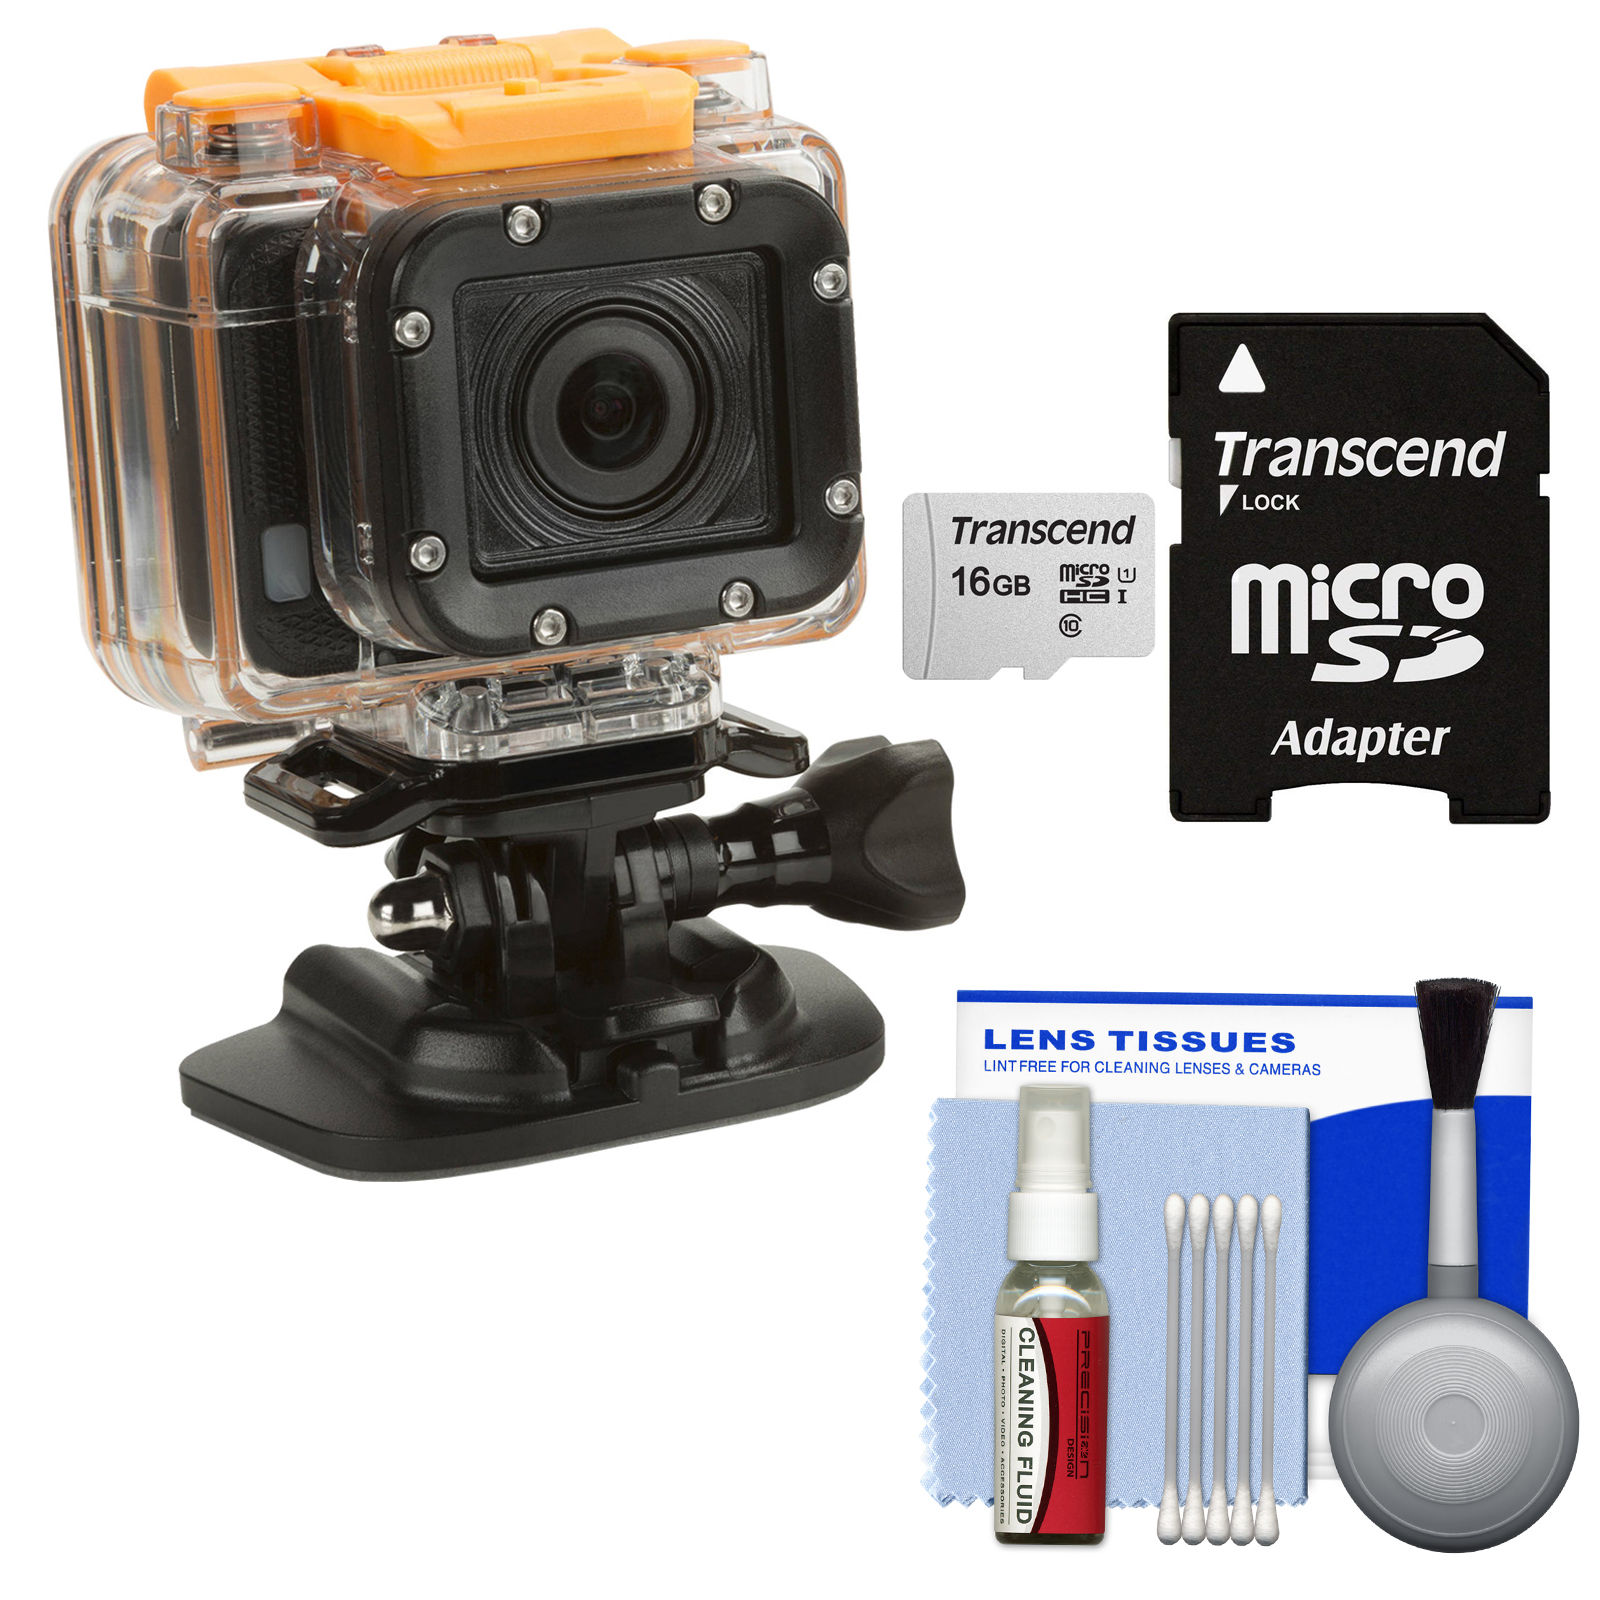 HP AC300w 1080p HD Wi-Fi Action Camera Camcorder - Refurbished with 16GB Card + Cleaning Kit